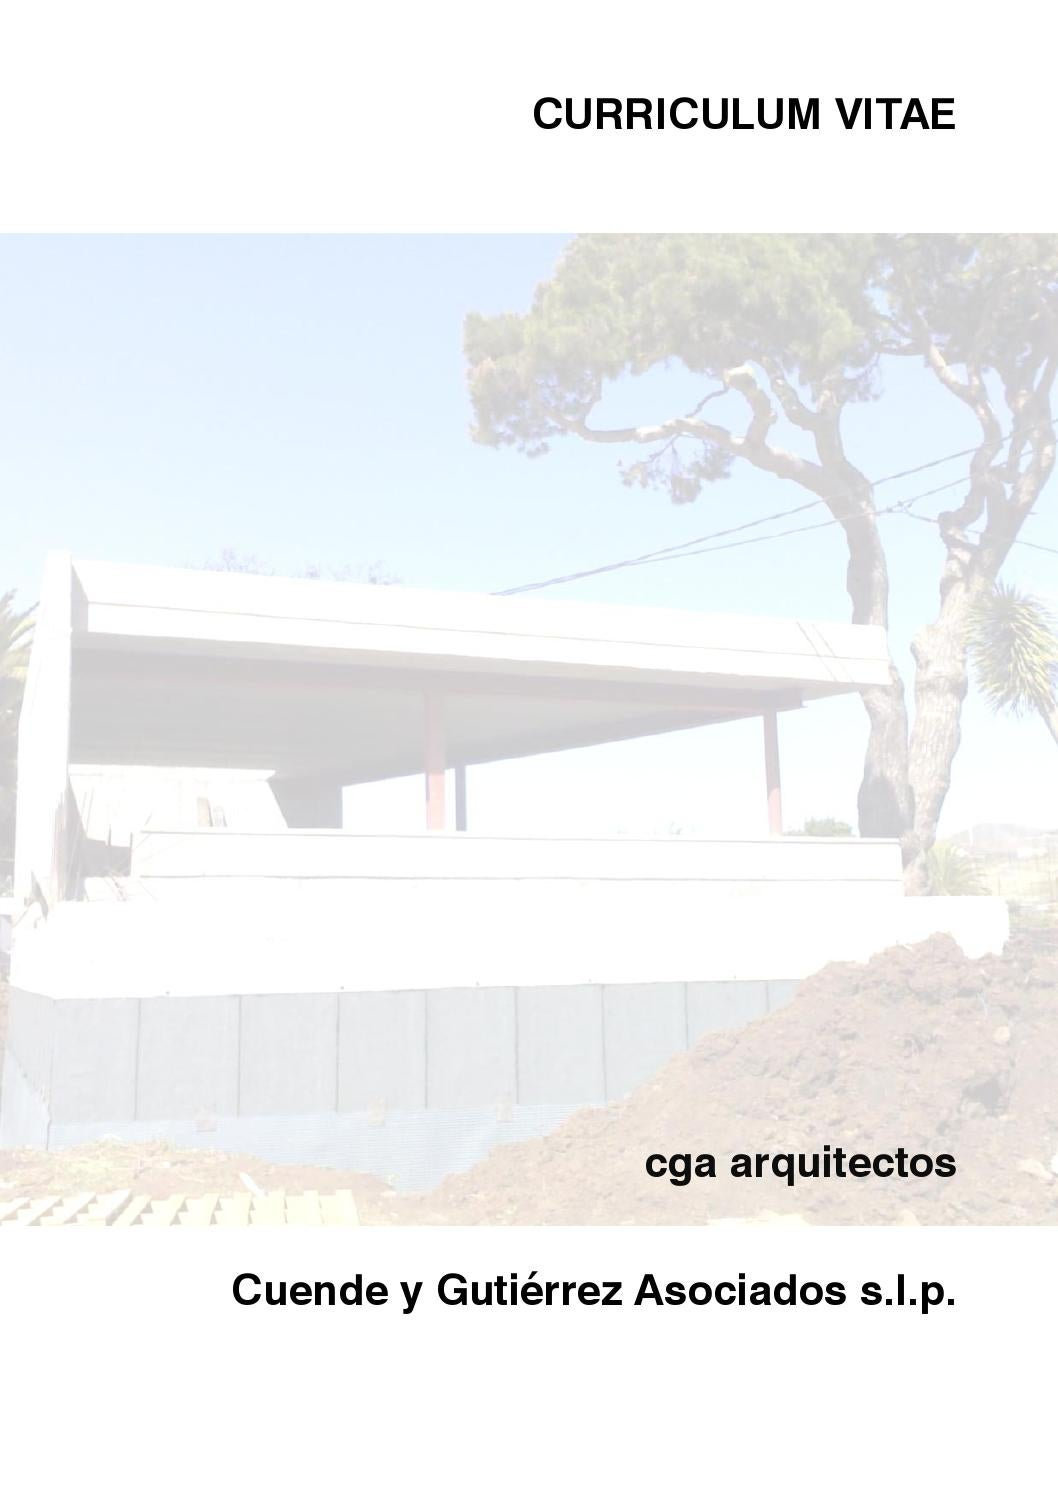 2015 curriculum vitae cga by Cuende y Gutiérrez Ass Arq - issuu